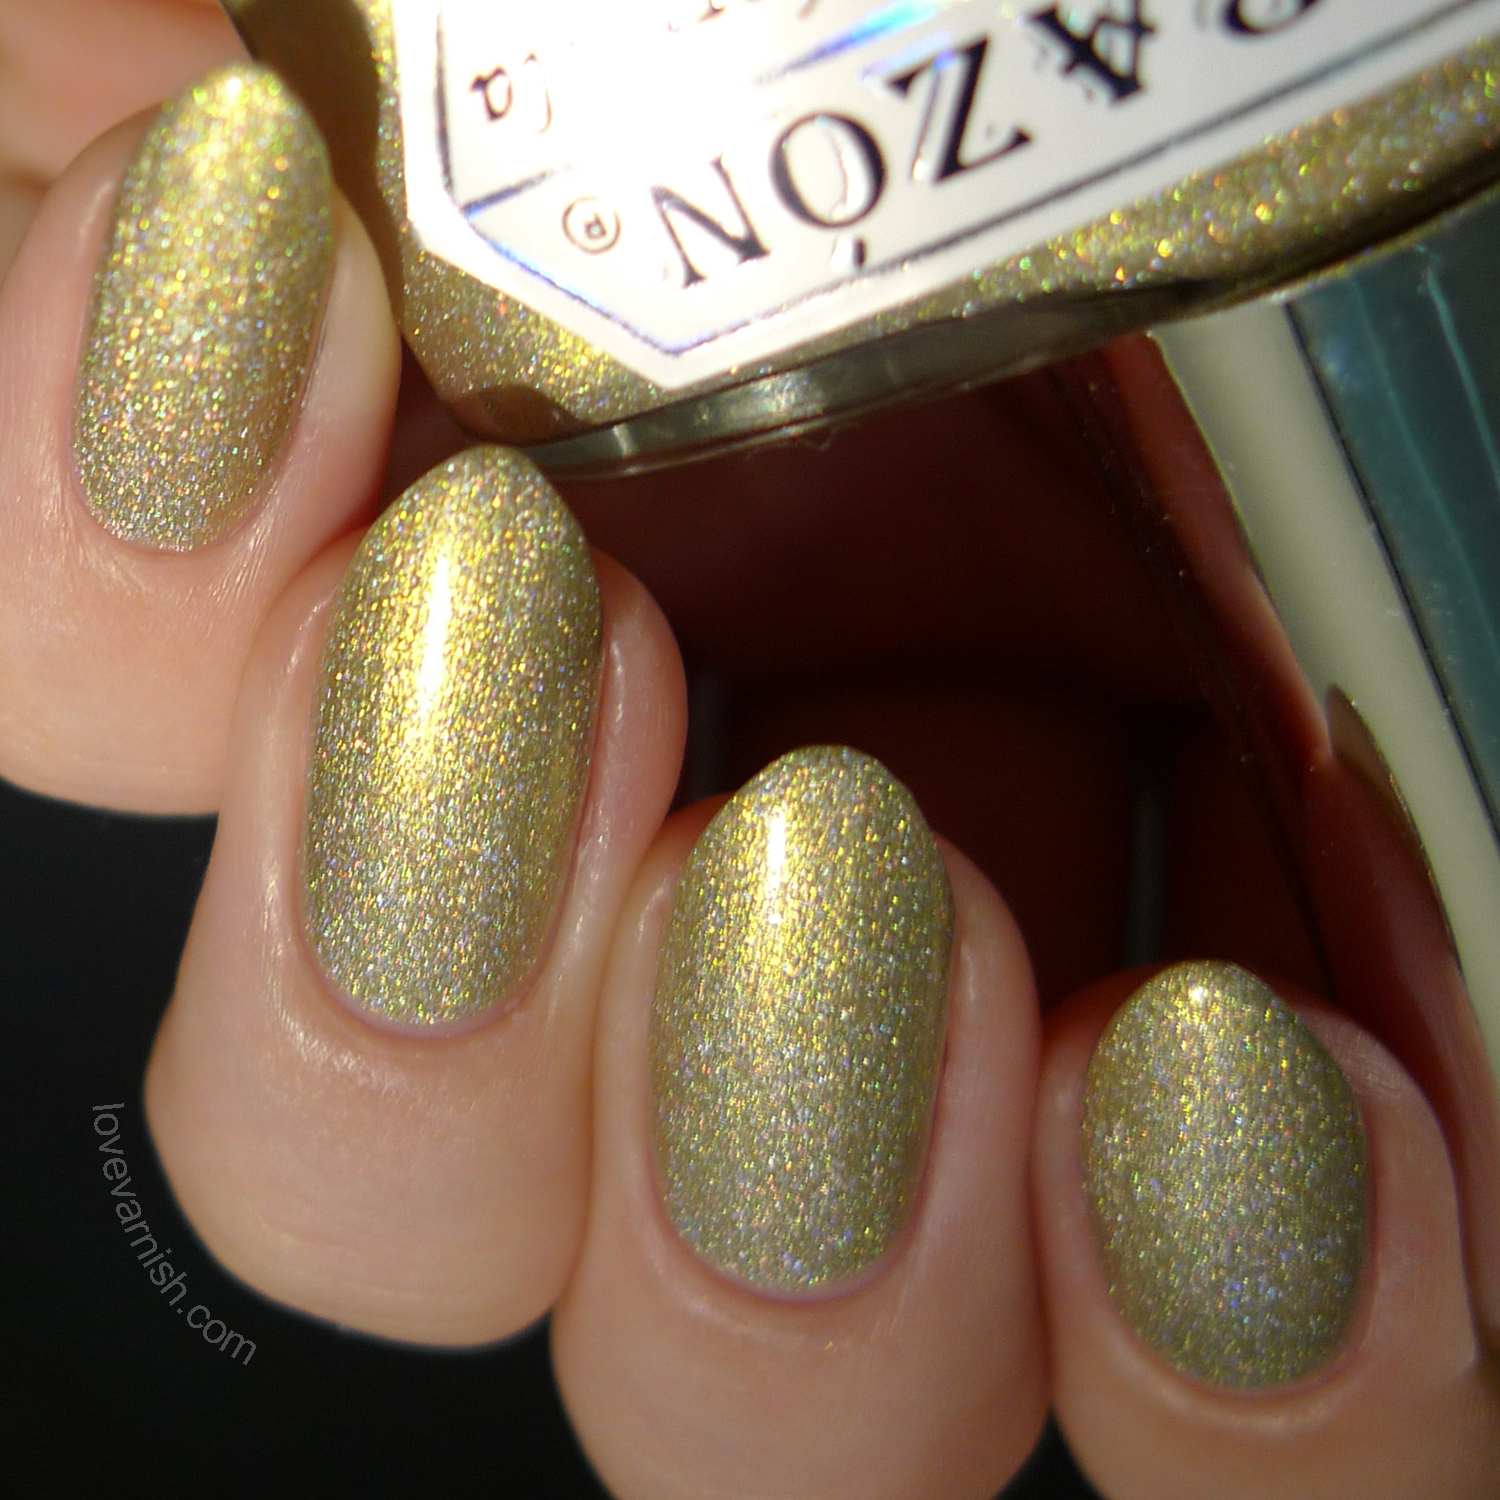 El Corazon Prisma 423-38 swatches and review